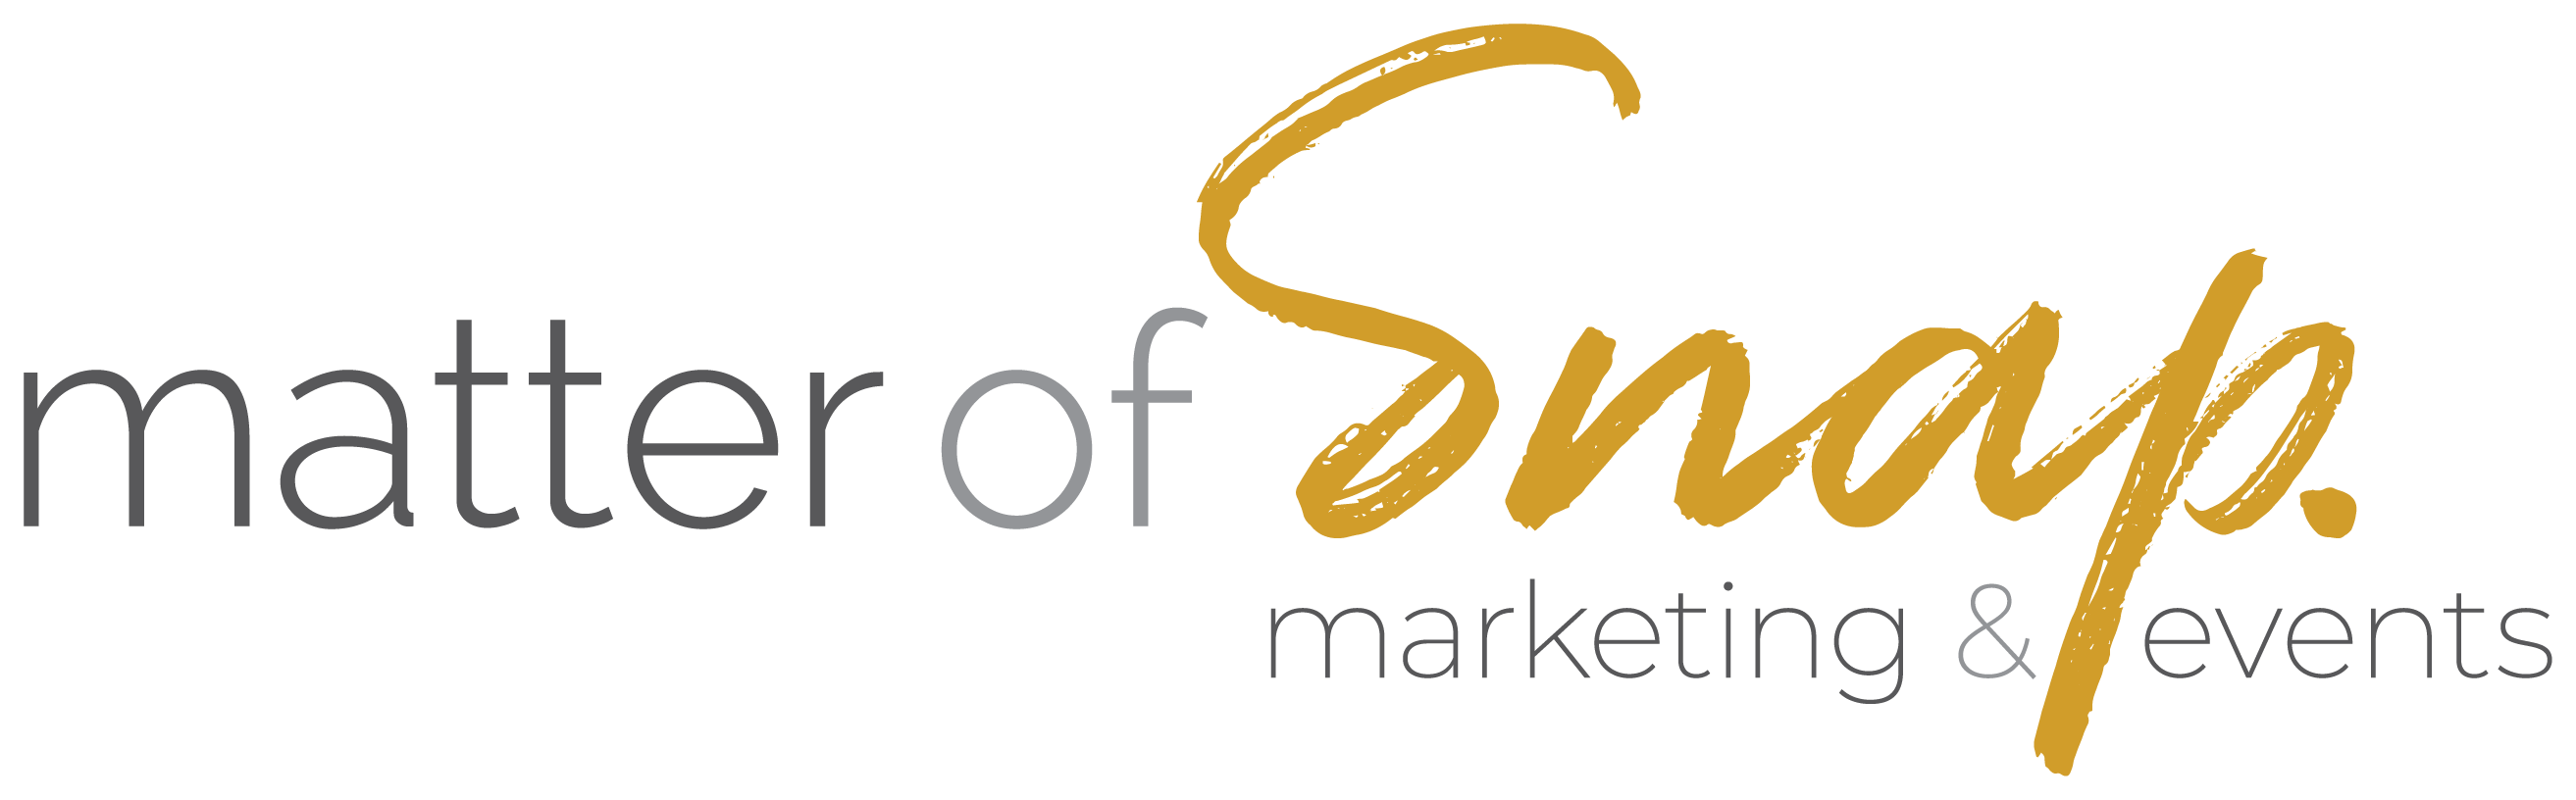 Matter of Snap Marketing & Events Logo